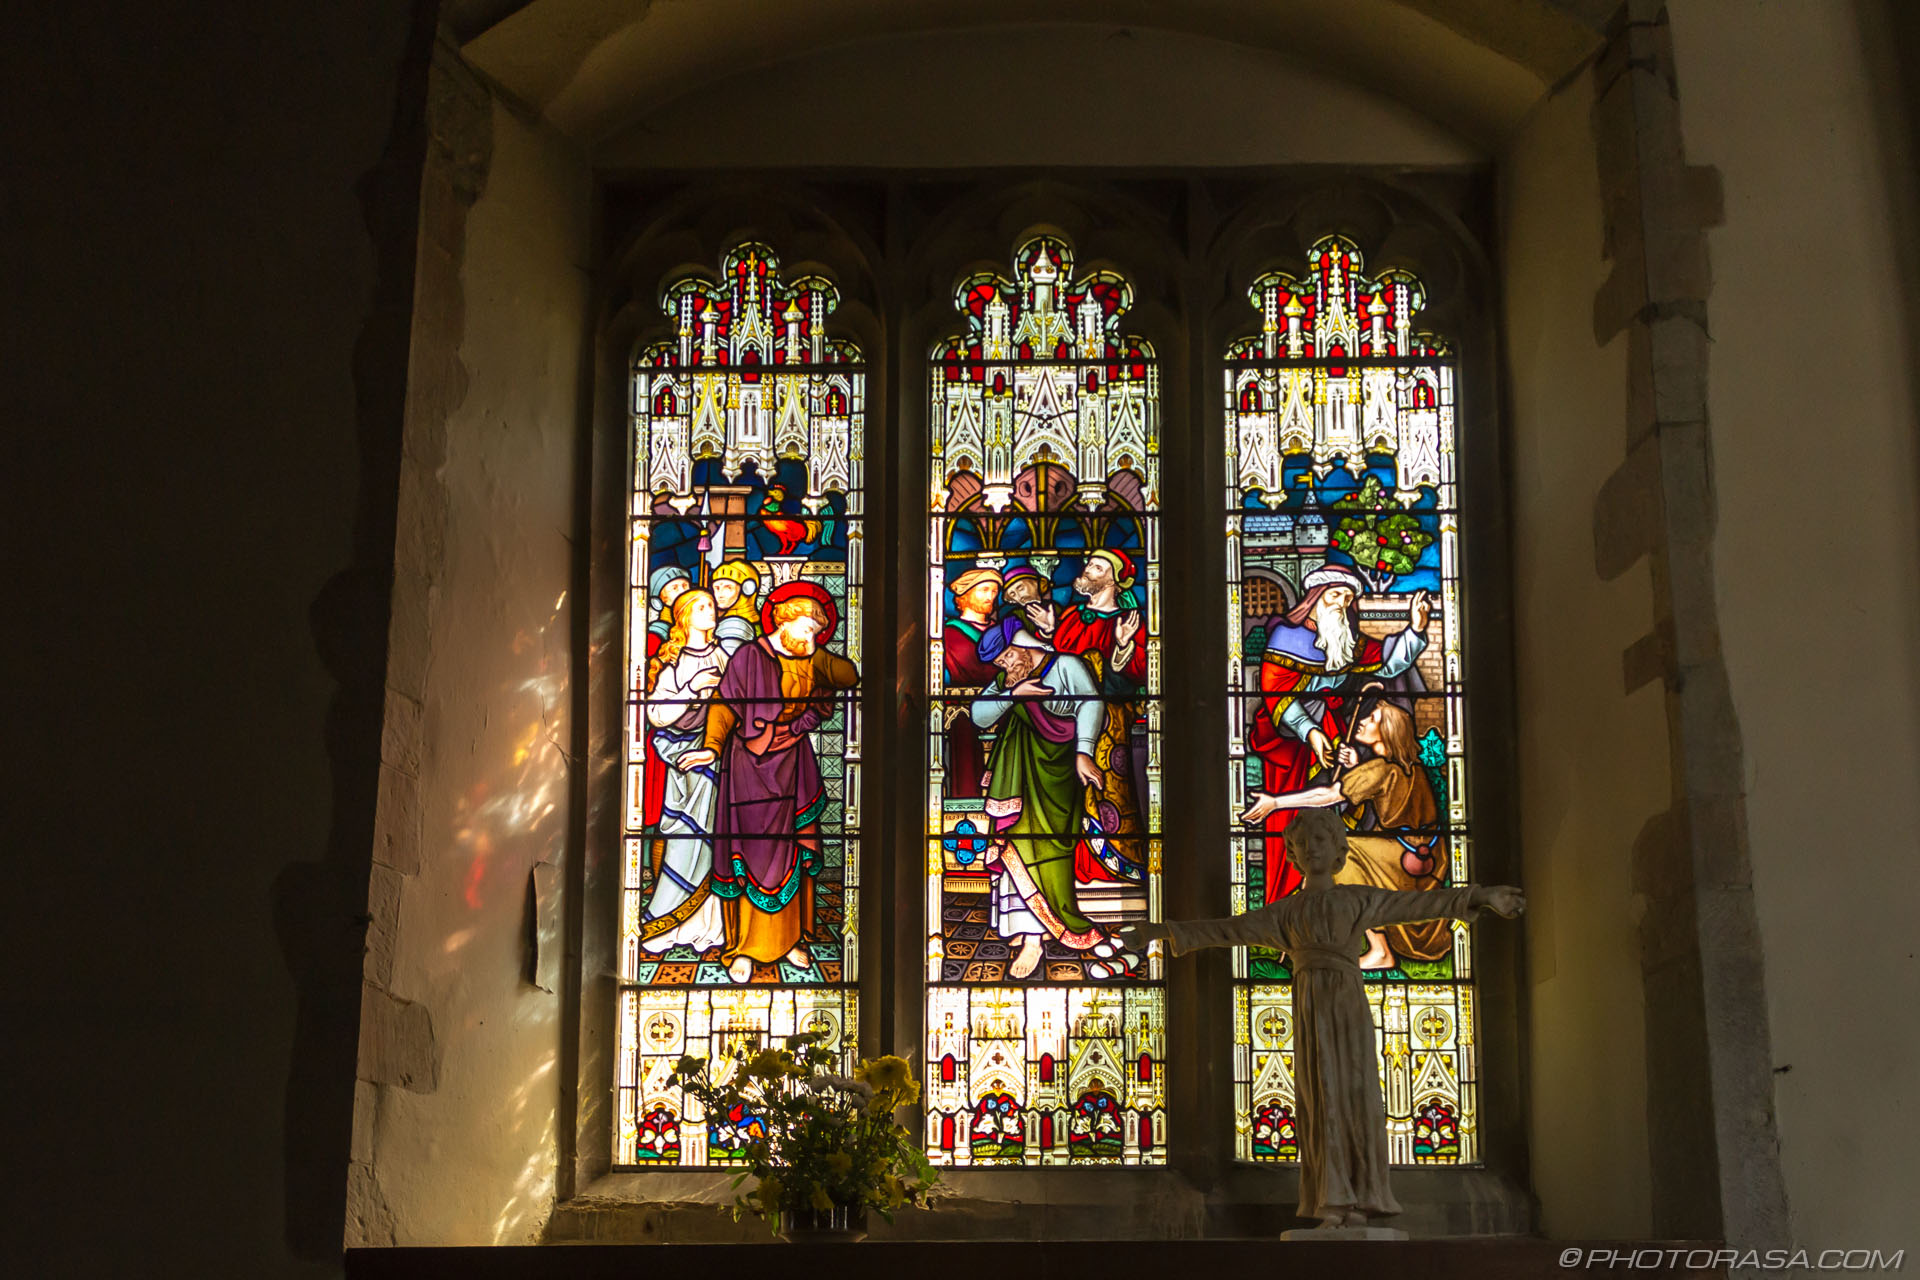 http://photorasa.com/st-marys-church-in-lenham/stained-glass-and-religious-statue/